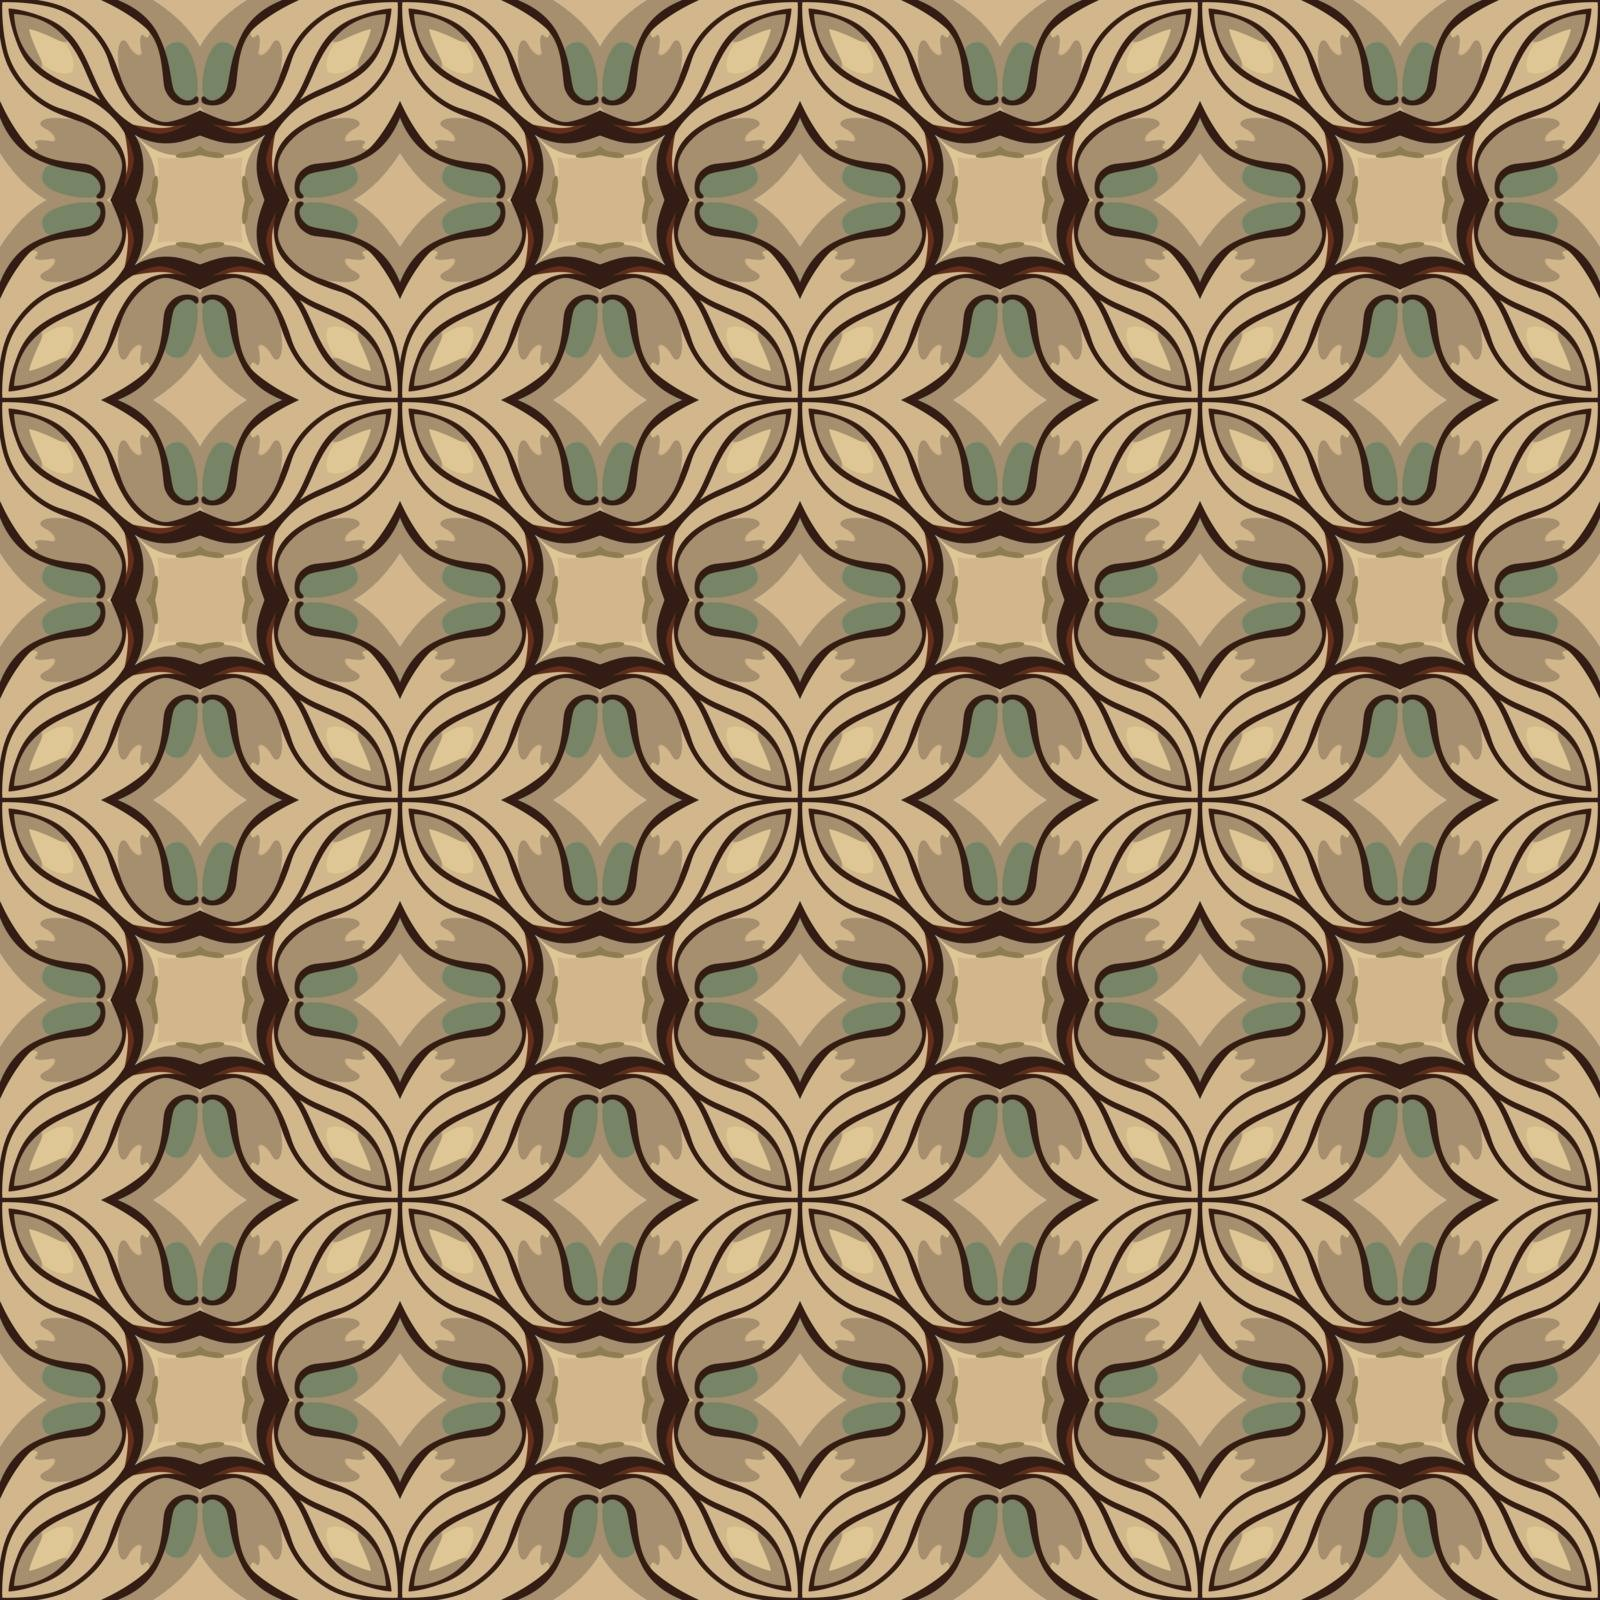 Seamless illustrated pattern made of abstract elements in beige, gray, turquoise and brown